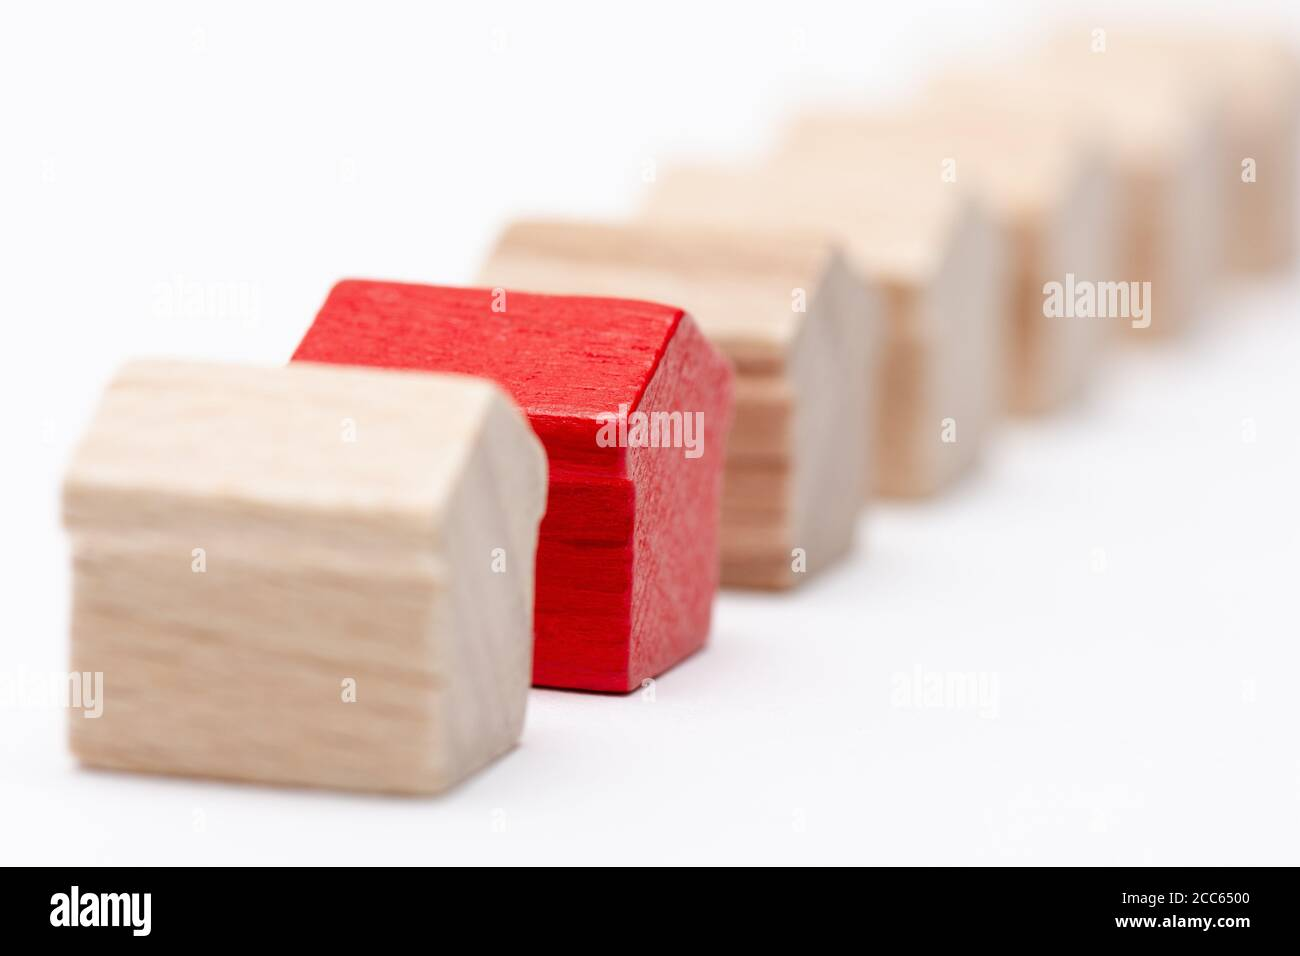 Tiny wooden toy houses in a row, one of them painted red, white background Stock Photo